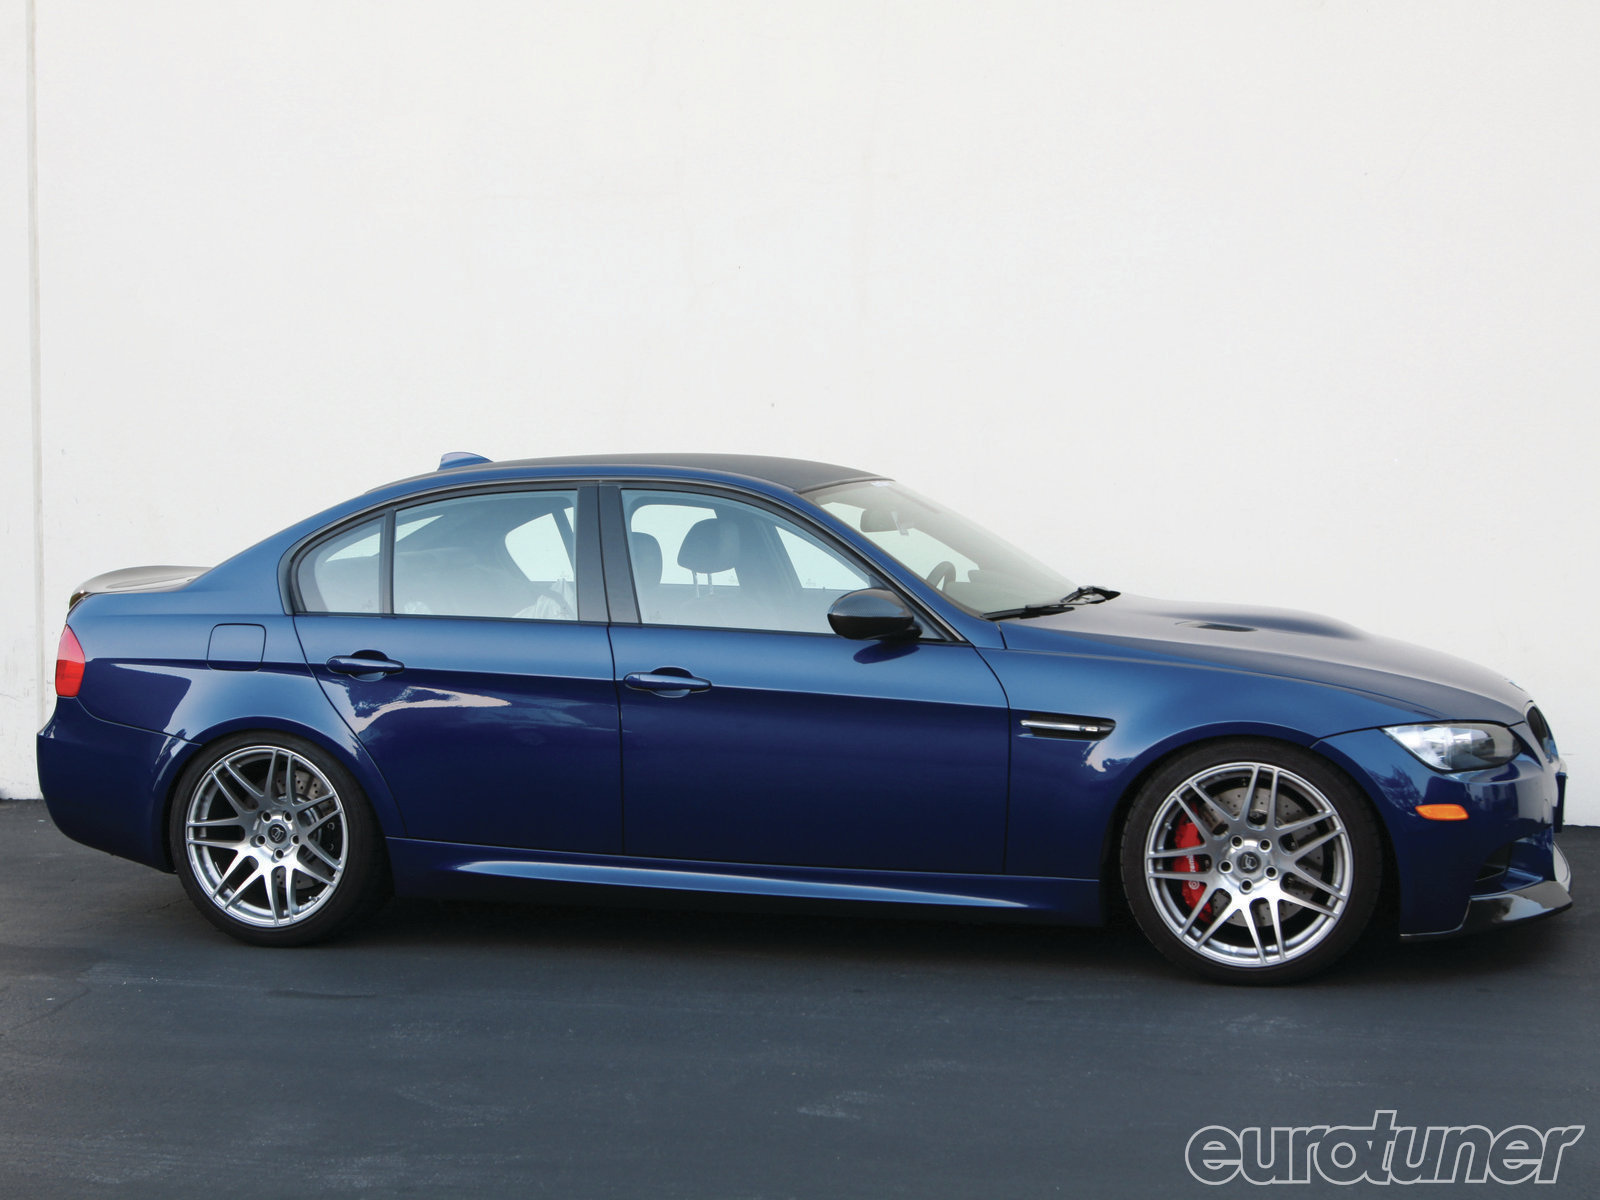 small resolution of eurp 1109 01 2010 bmw m3 cover